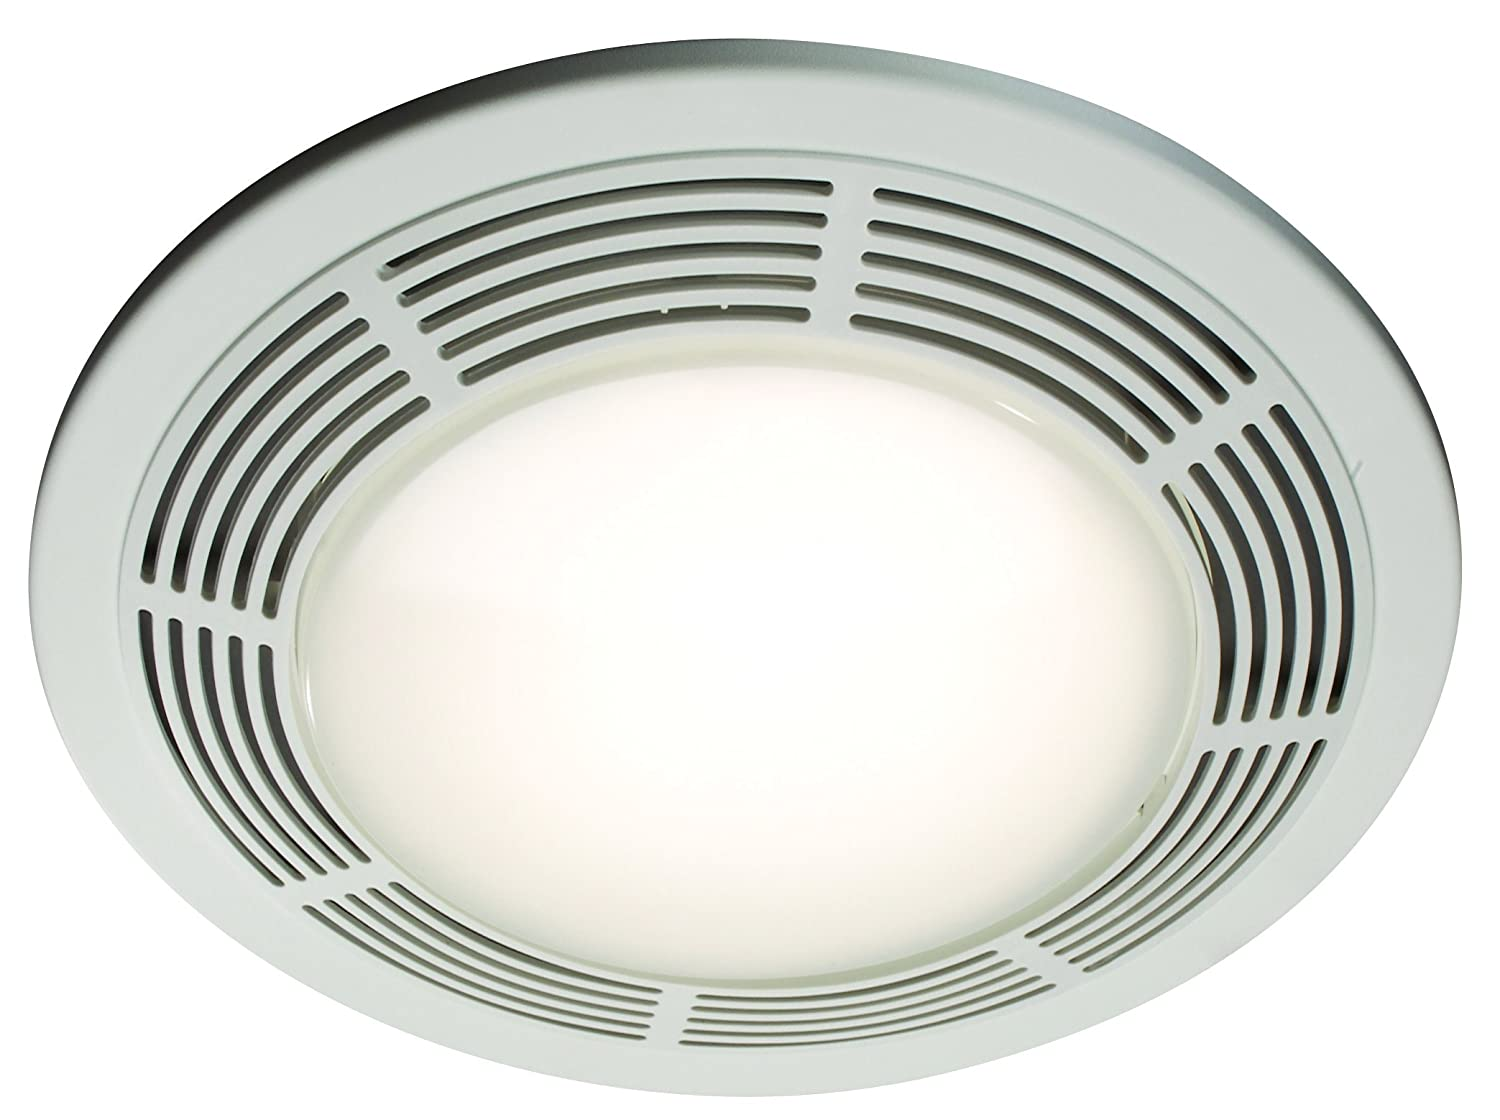 Ordinaire NuTone 8664RP Designer Fan And Light With Round White Grille And Glass  Lens, 100 CFM 3.5 Sones   Built In Household Ventilation Fans   Amazon.com